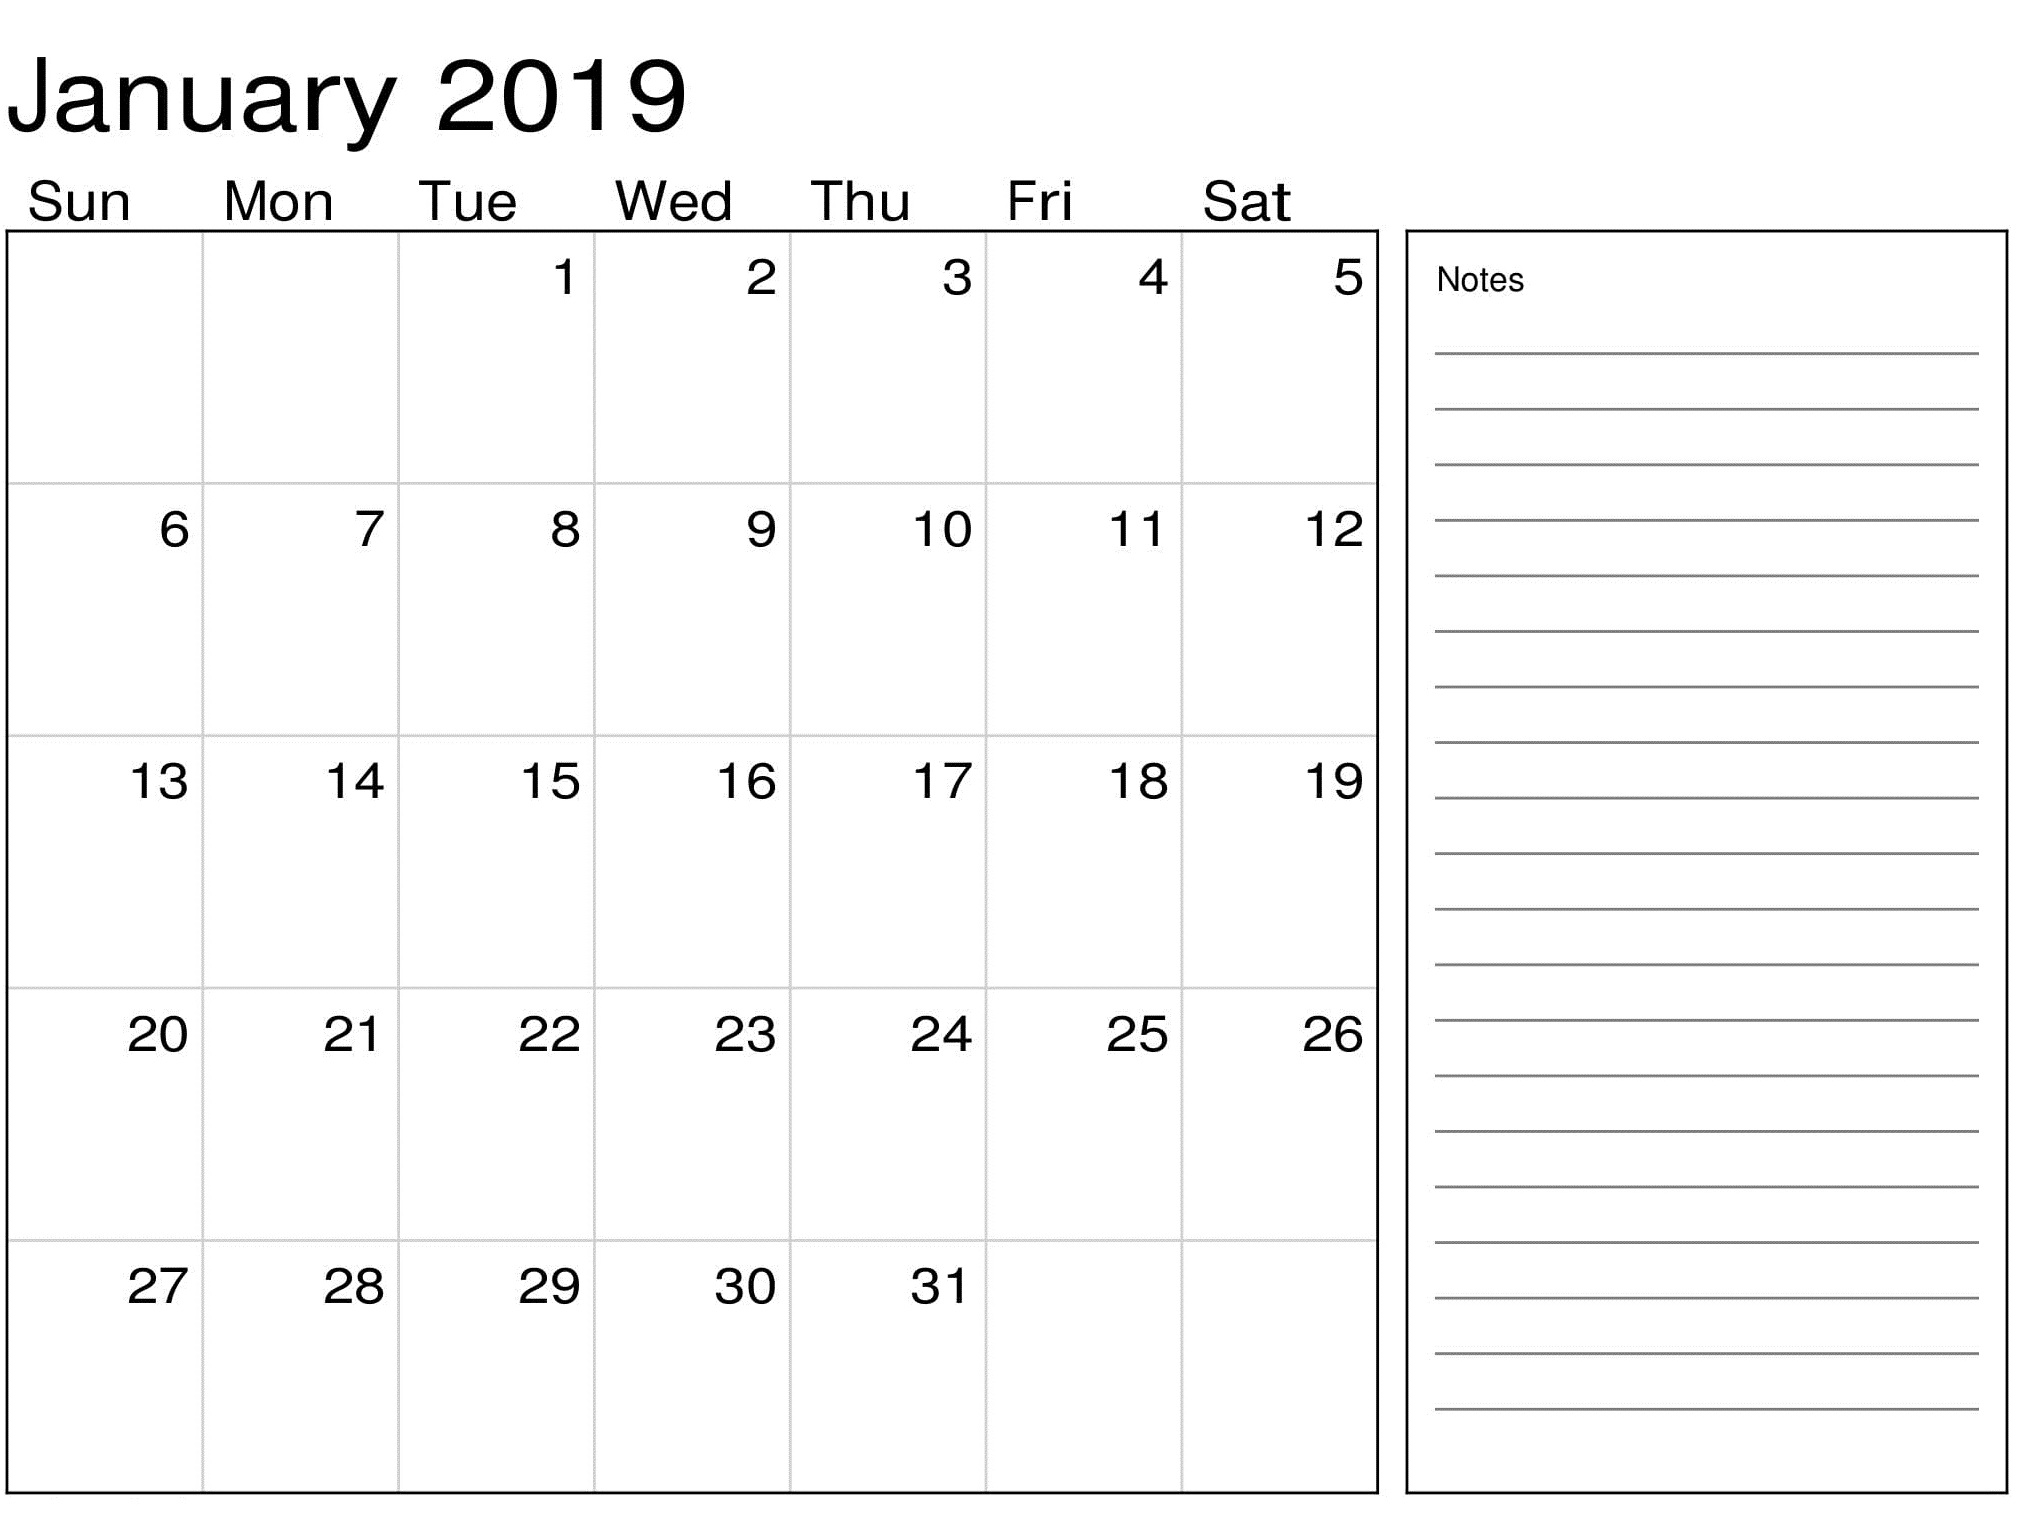 Calendar 2019 January With Notes